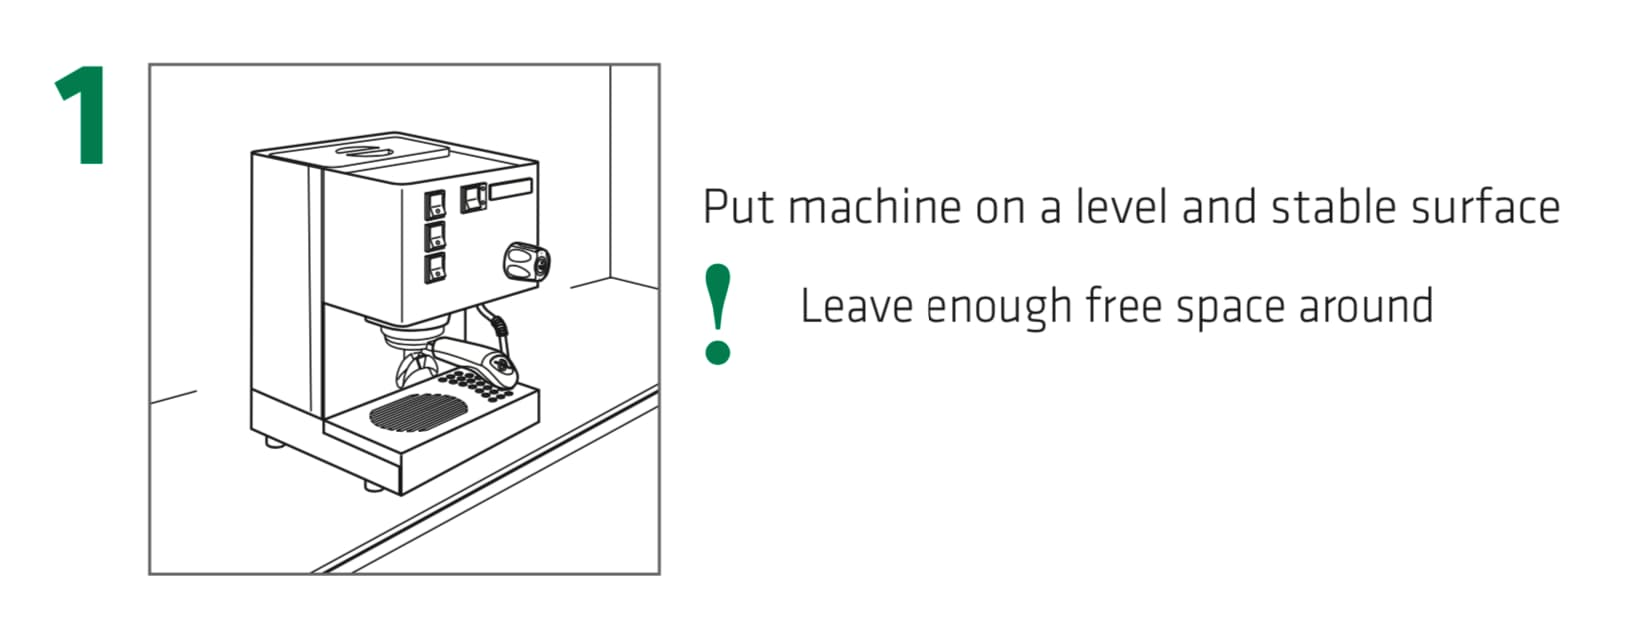 How to set up the Rancilio Silvia Espresso Machine, Step 1: Put machine on a level and stable surface, leave enough free space around.